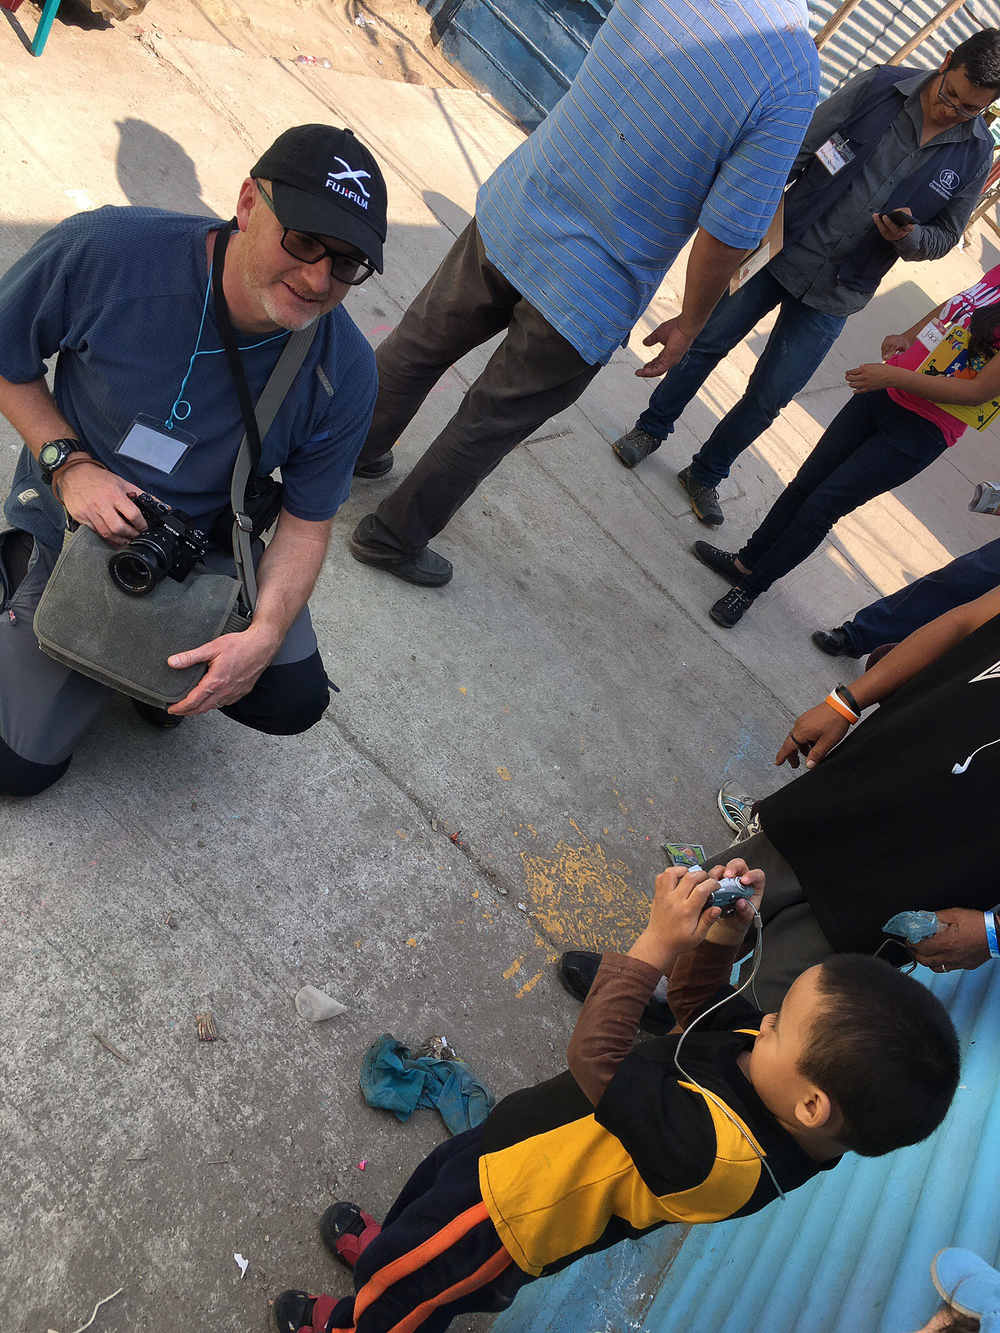 Being photographed, Guatemala City, March 2016